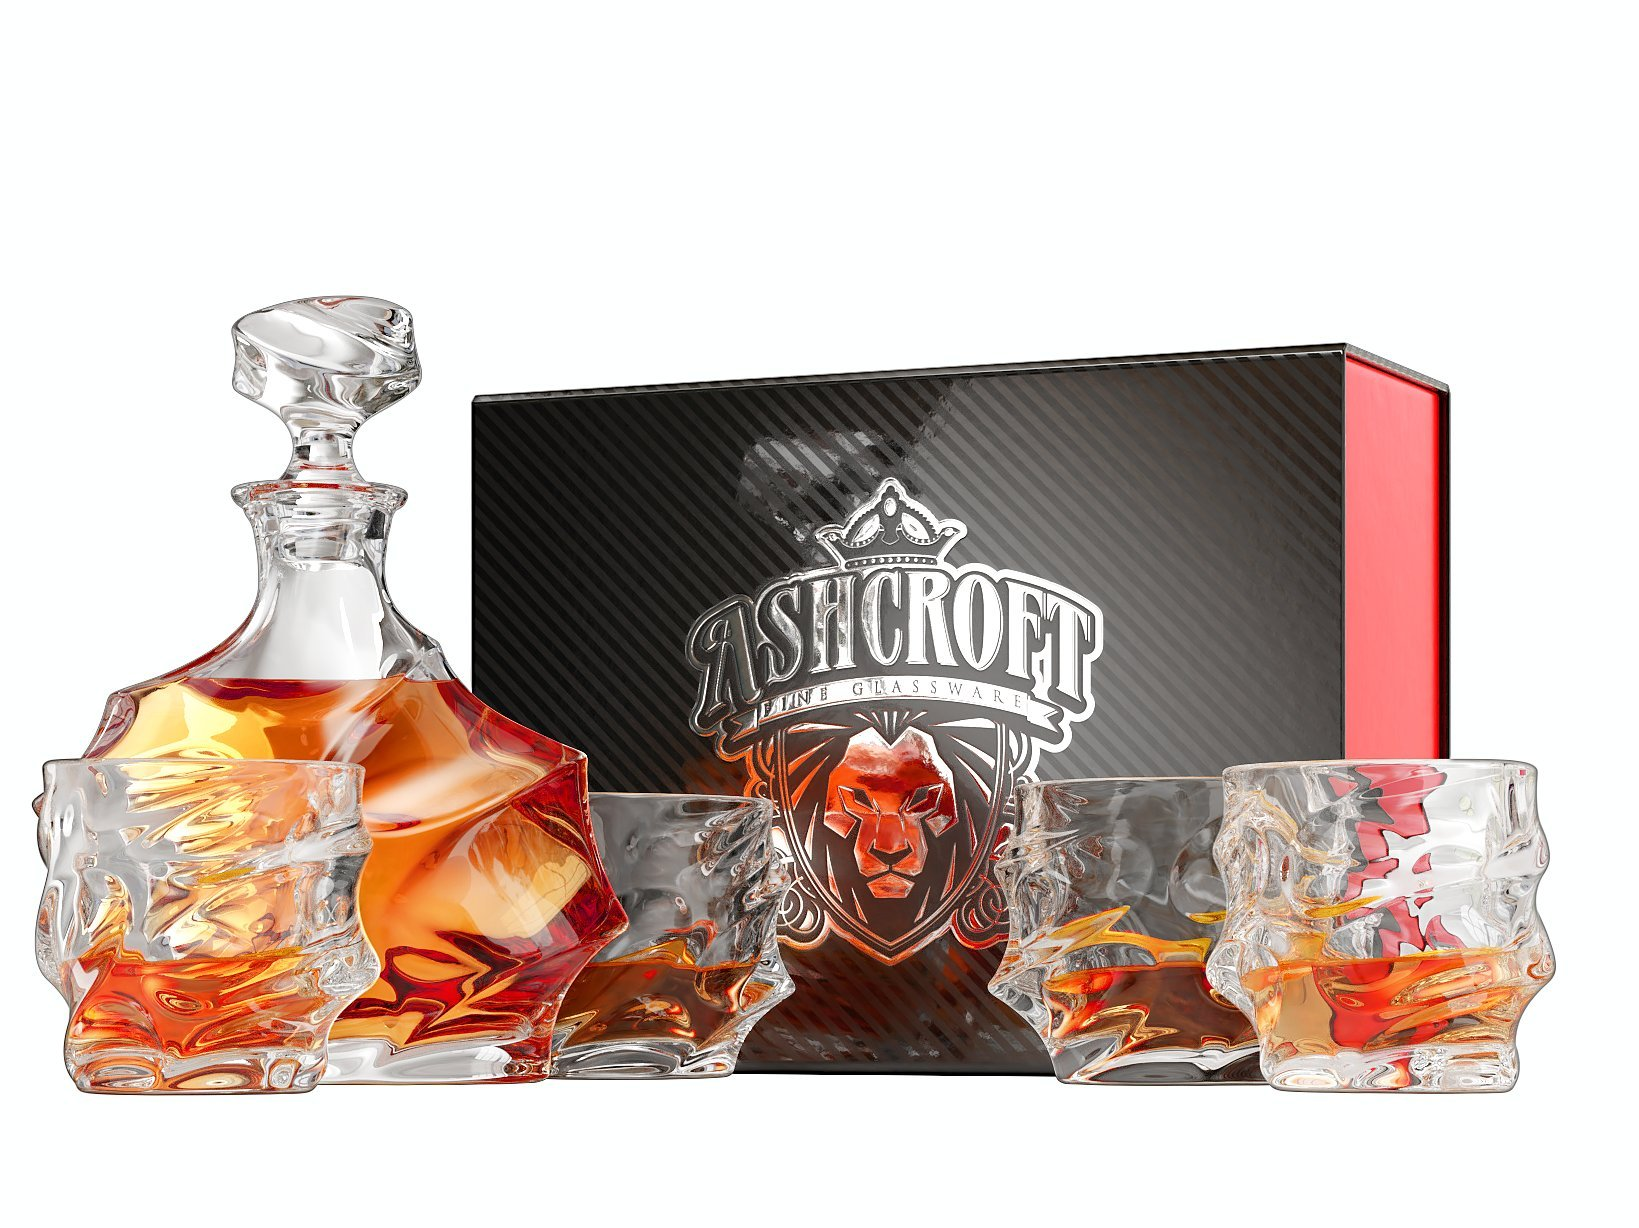 5-Piece Everest Whiskey Decanter Set. 4 Glasses and Scotch Decanter with Stopper. Unique Elegant Dishwasher Safe Glass Liquor Bourbon Decanter Ultra - Clarity Glassware by Ashcroft